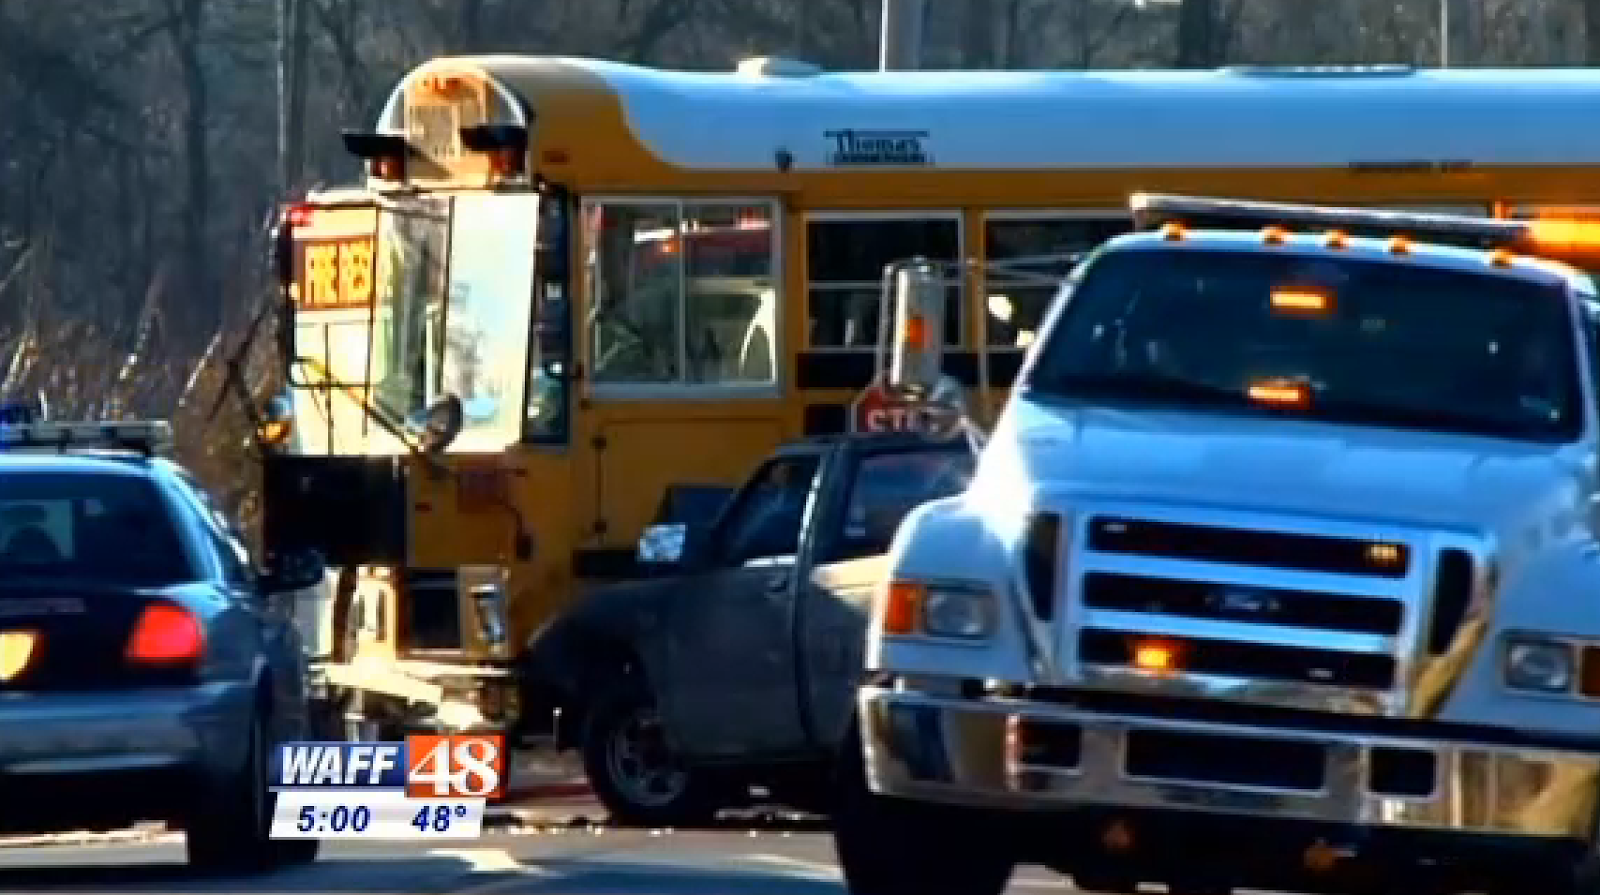 Alabama limestone county capshaw - 2 Students Taken To Hospital After Limestone Co School Bus Wreck In Alabama